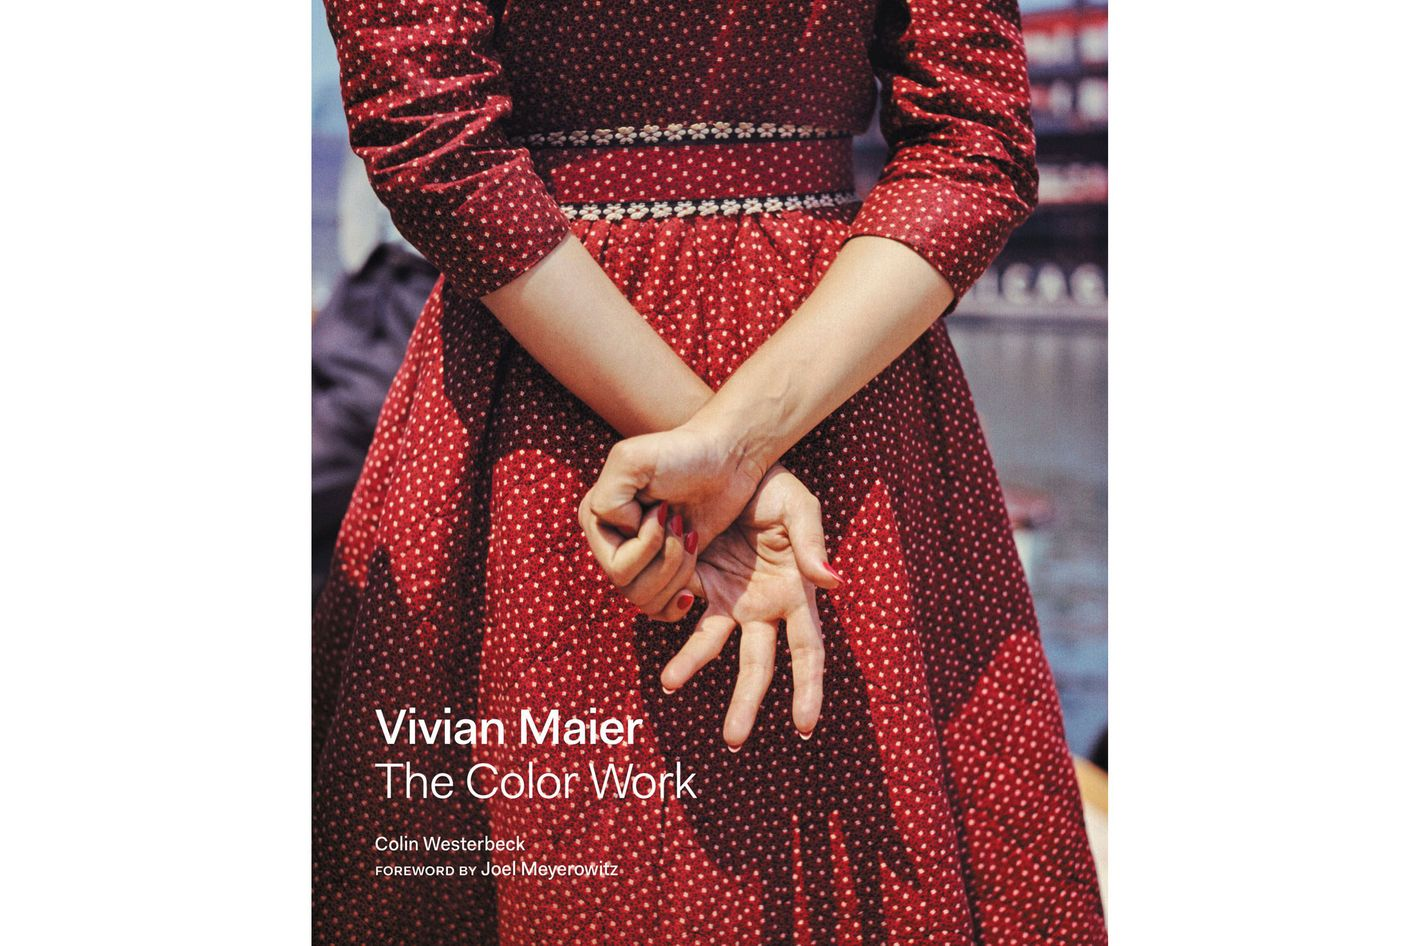 Vivian Maier: The Color Work byColin Westerbeck